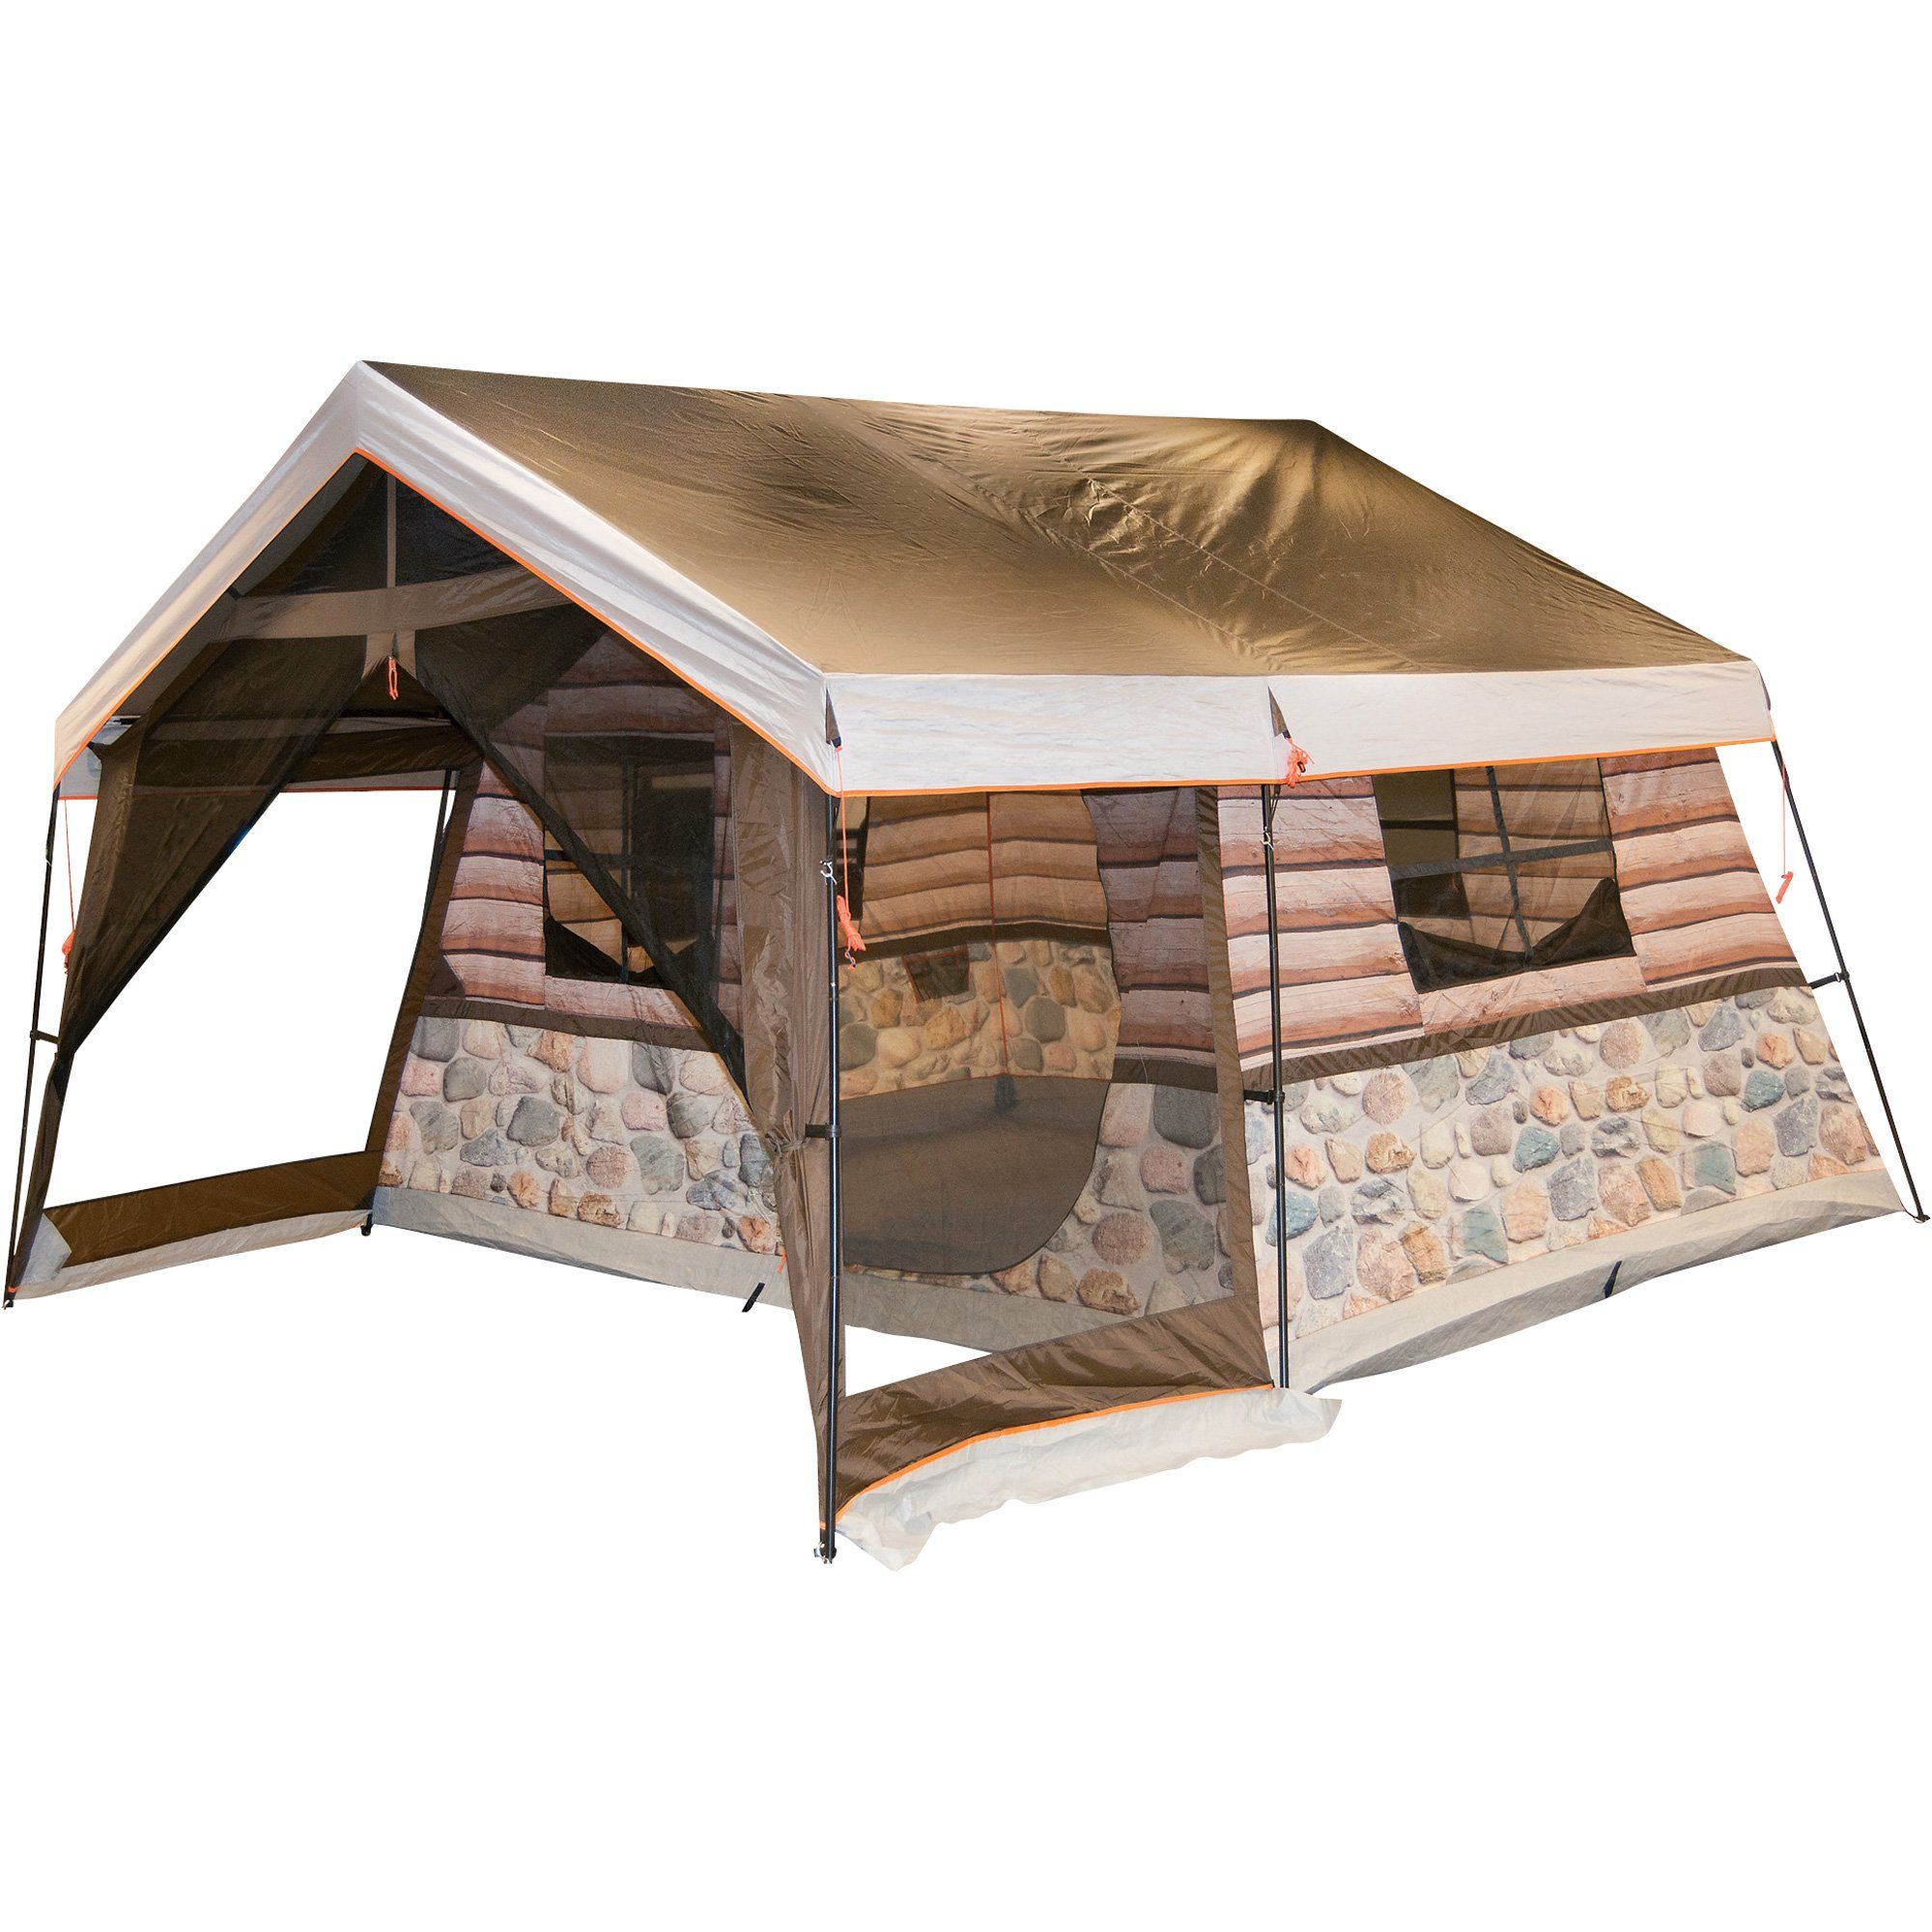 Timber Ridge 8-Man Log Cabin Tent  sc 1 st  Pinterest & Timber Ridge 8-Man Log Cabin Tent | Cabin tent Tents and Camping ...